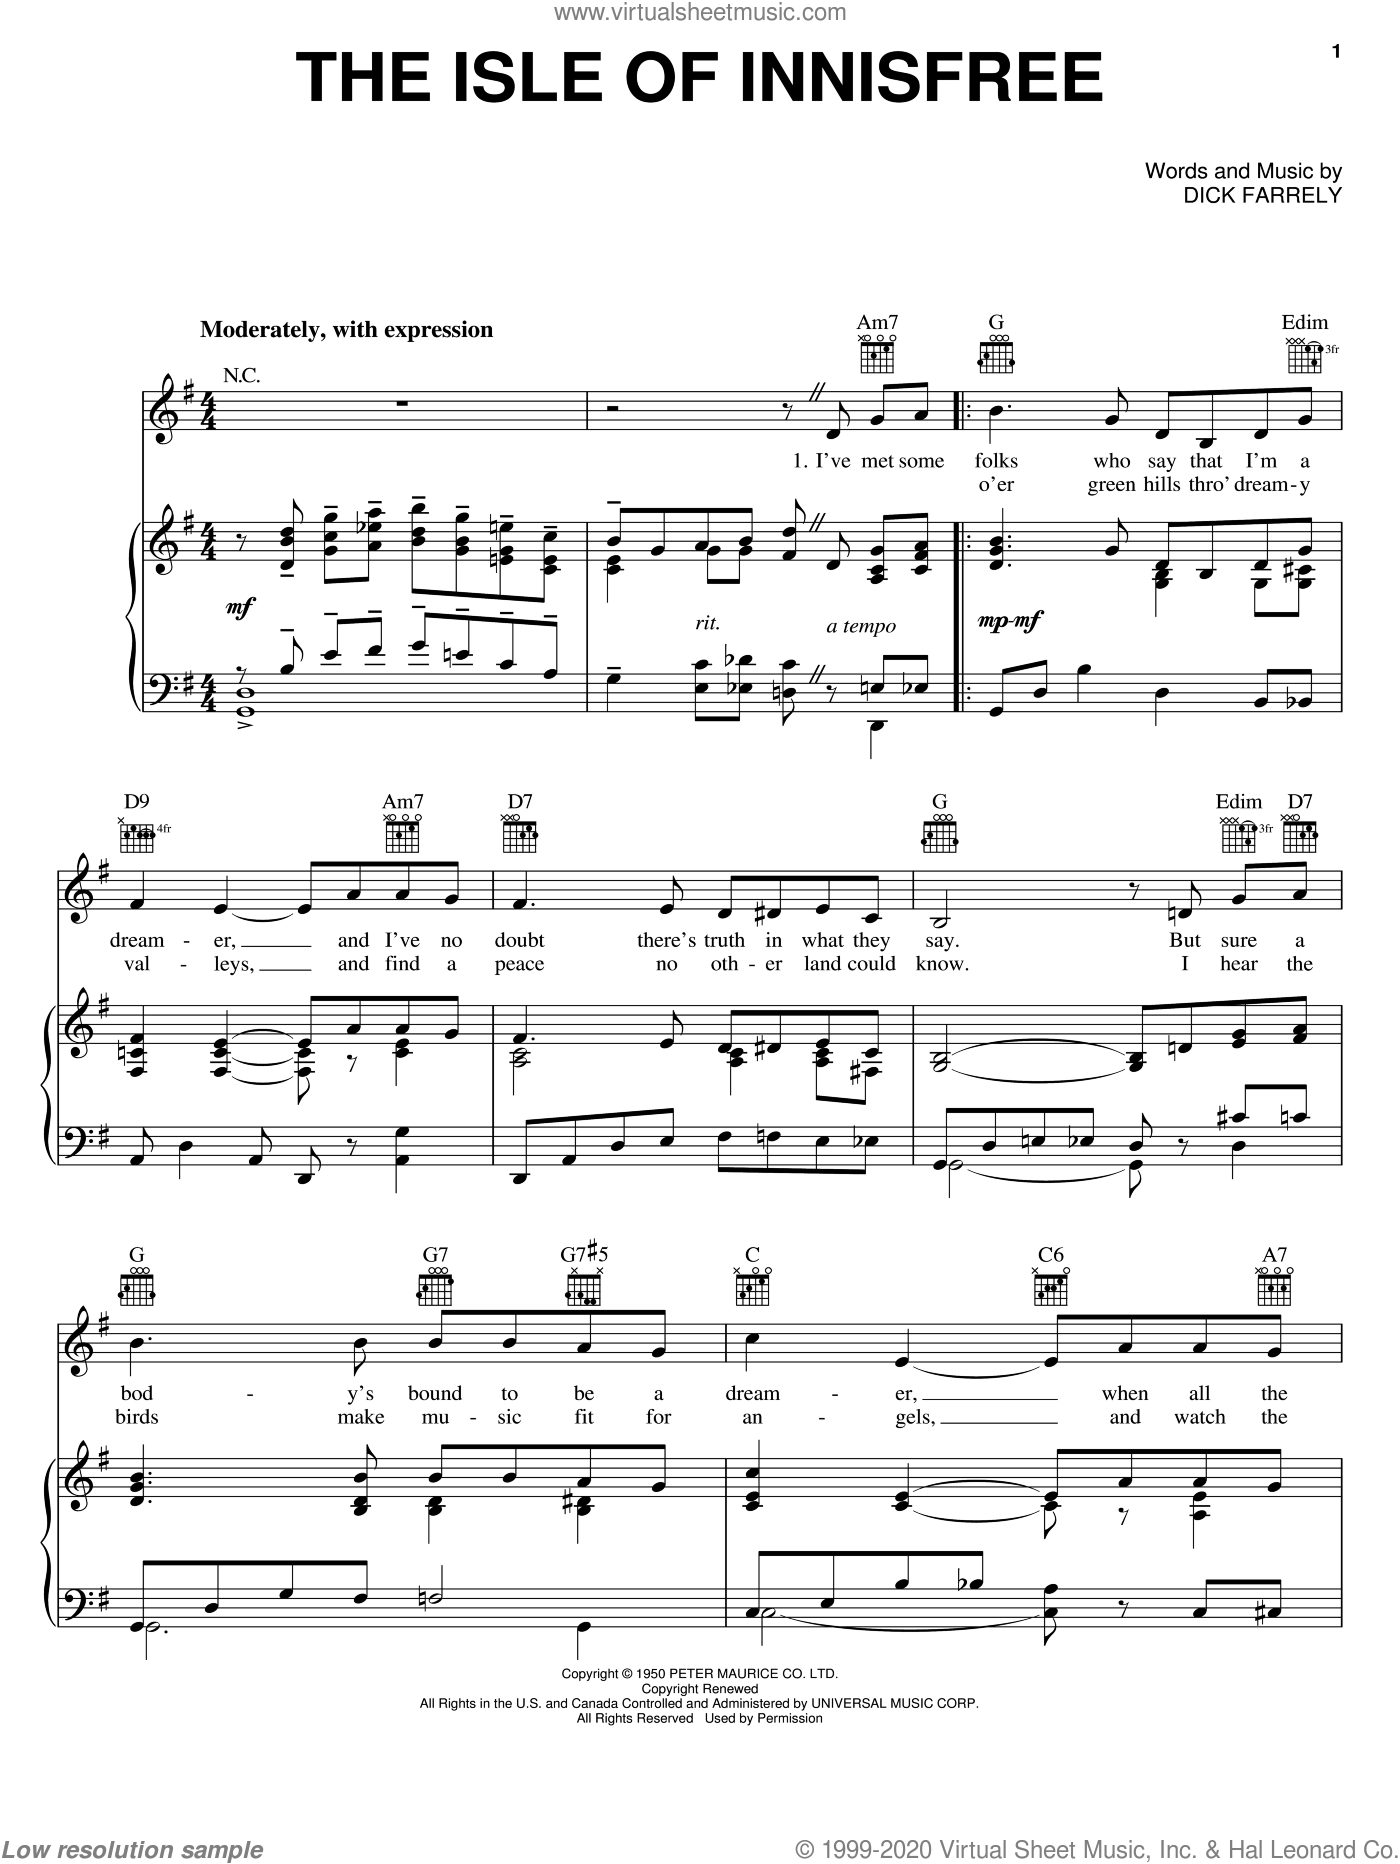 The Isle Of Innisfree sheet music for voice, piano or guitar by Dick Farrelly, intermediate skill level